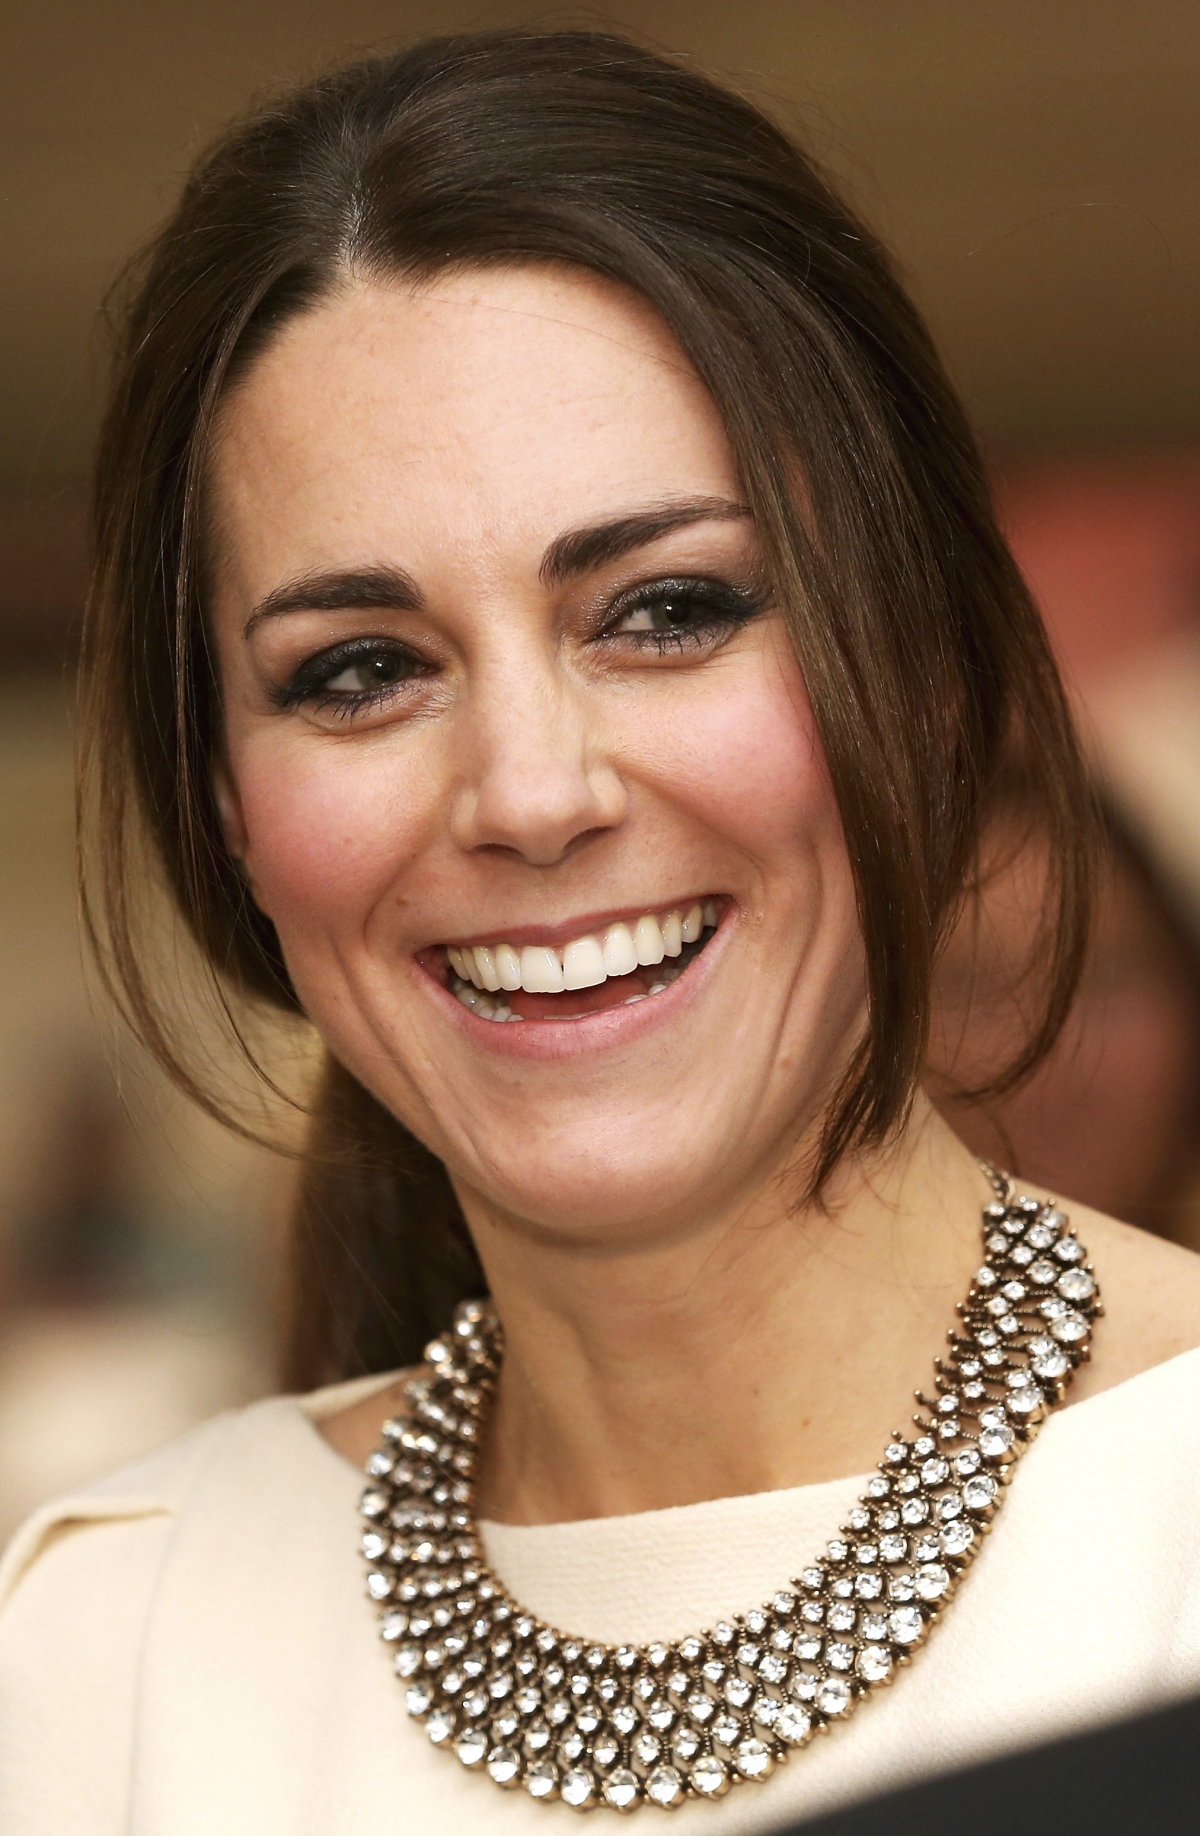 Catherine, the Duchess of Cambridge at the